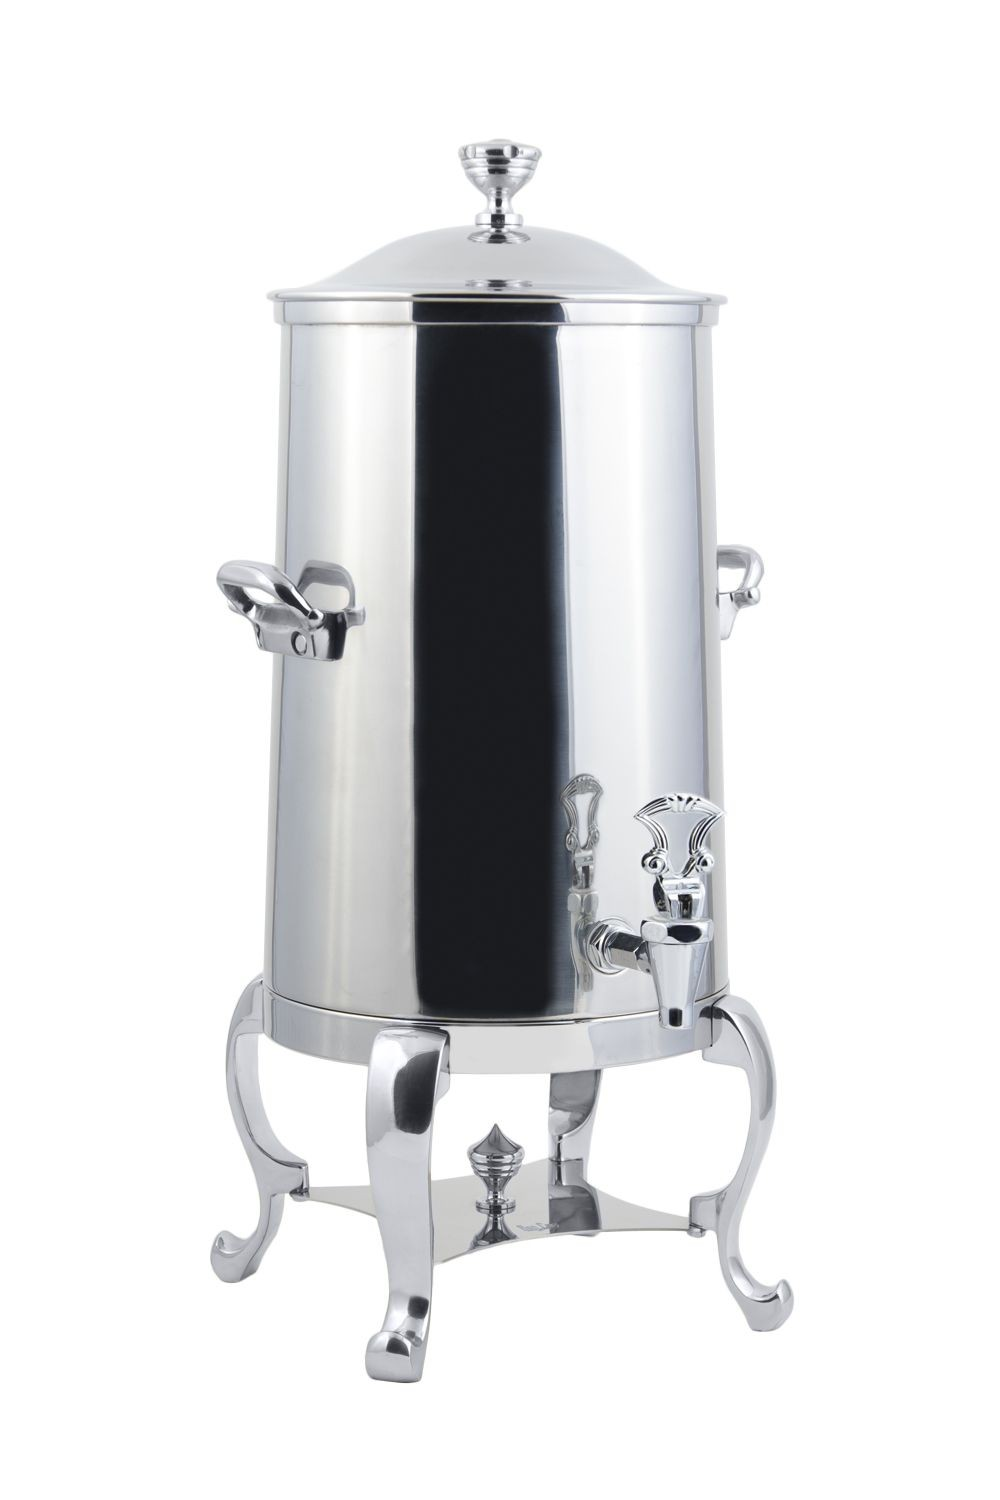 Bon Chef 49003C Roman Insulated Coffee Urn with Chrome Trim, 3 Gallon